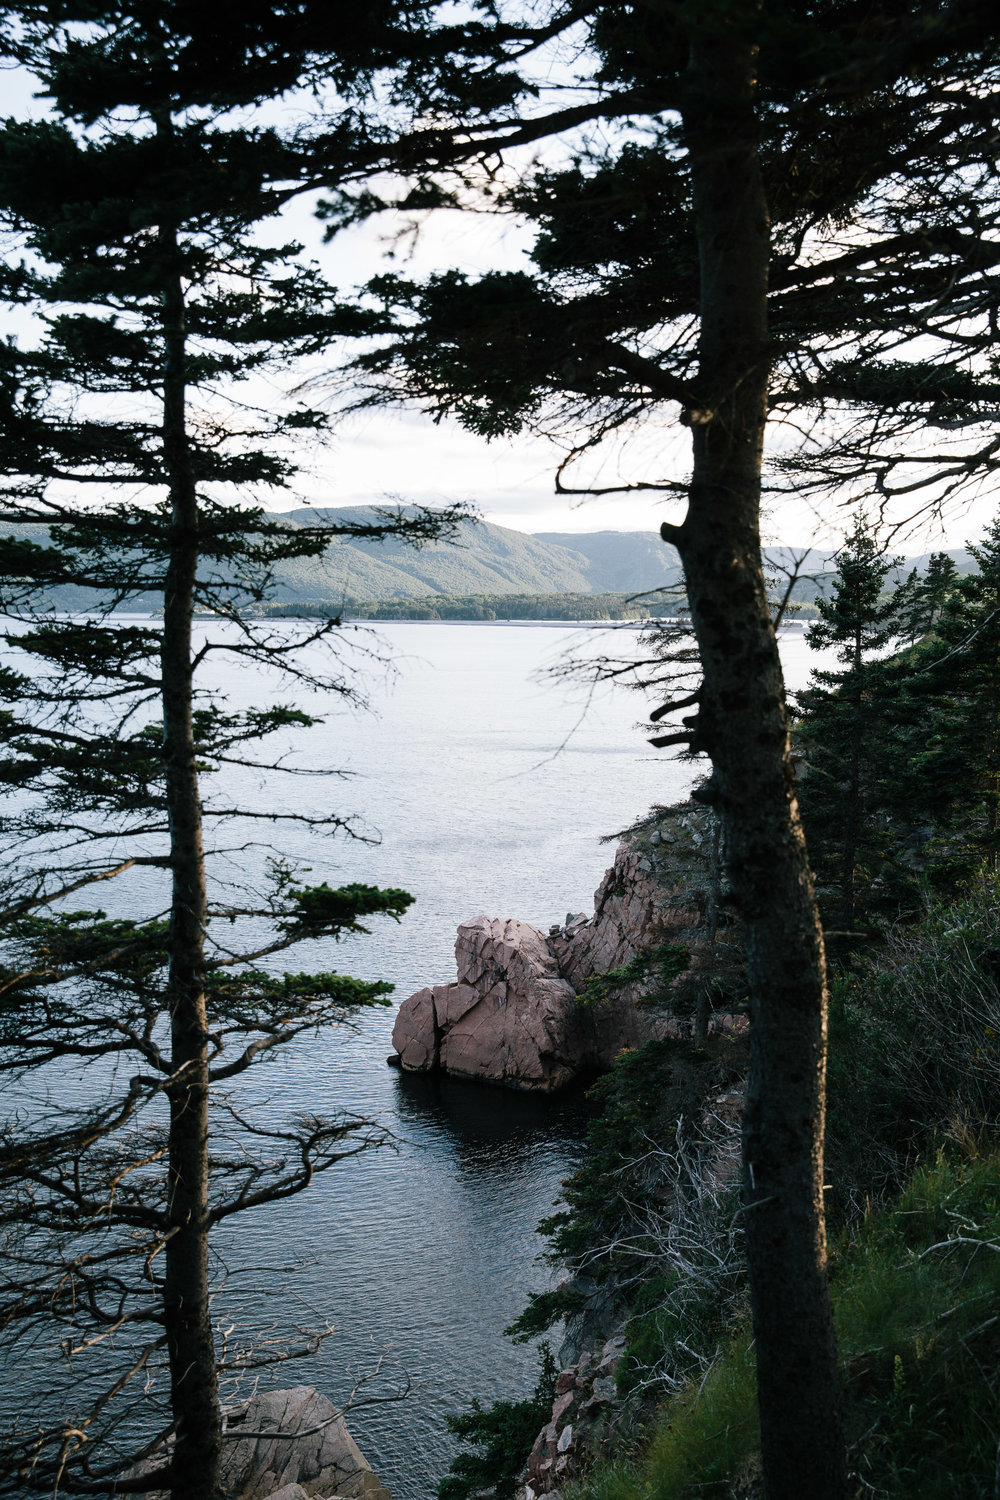 Rock outcrop into the ocean seen between trees- travel photography cape breton nova scotia